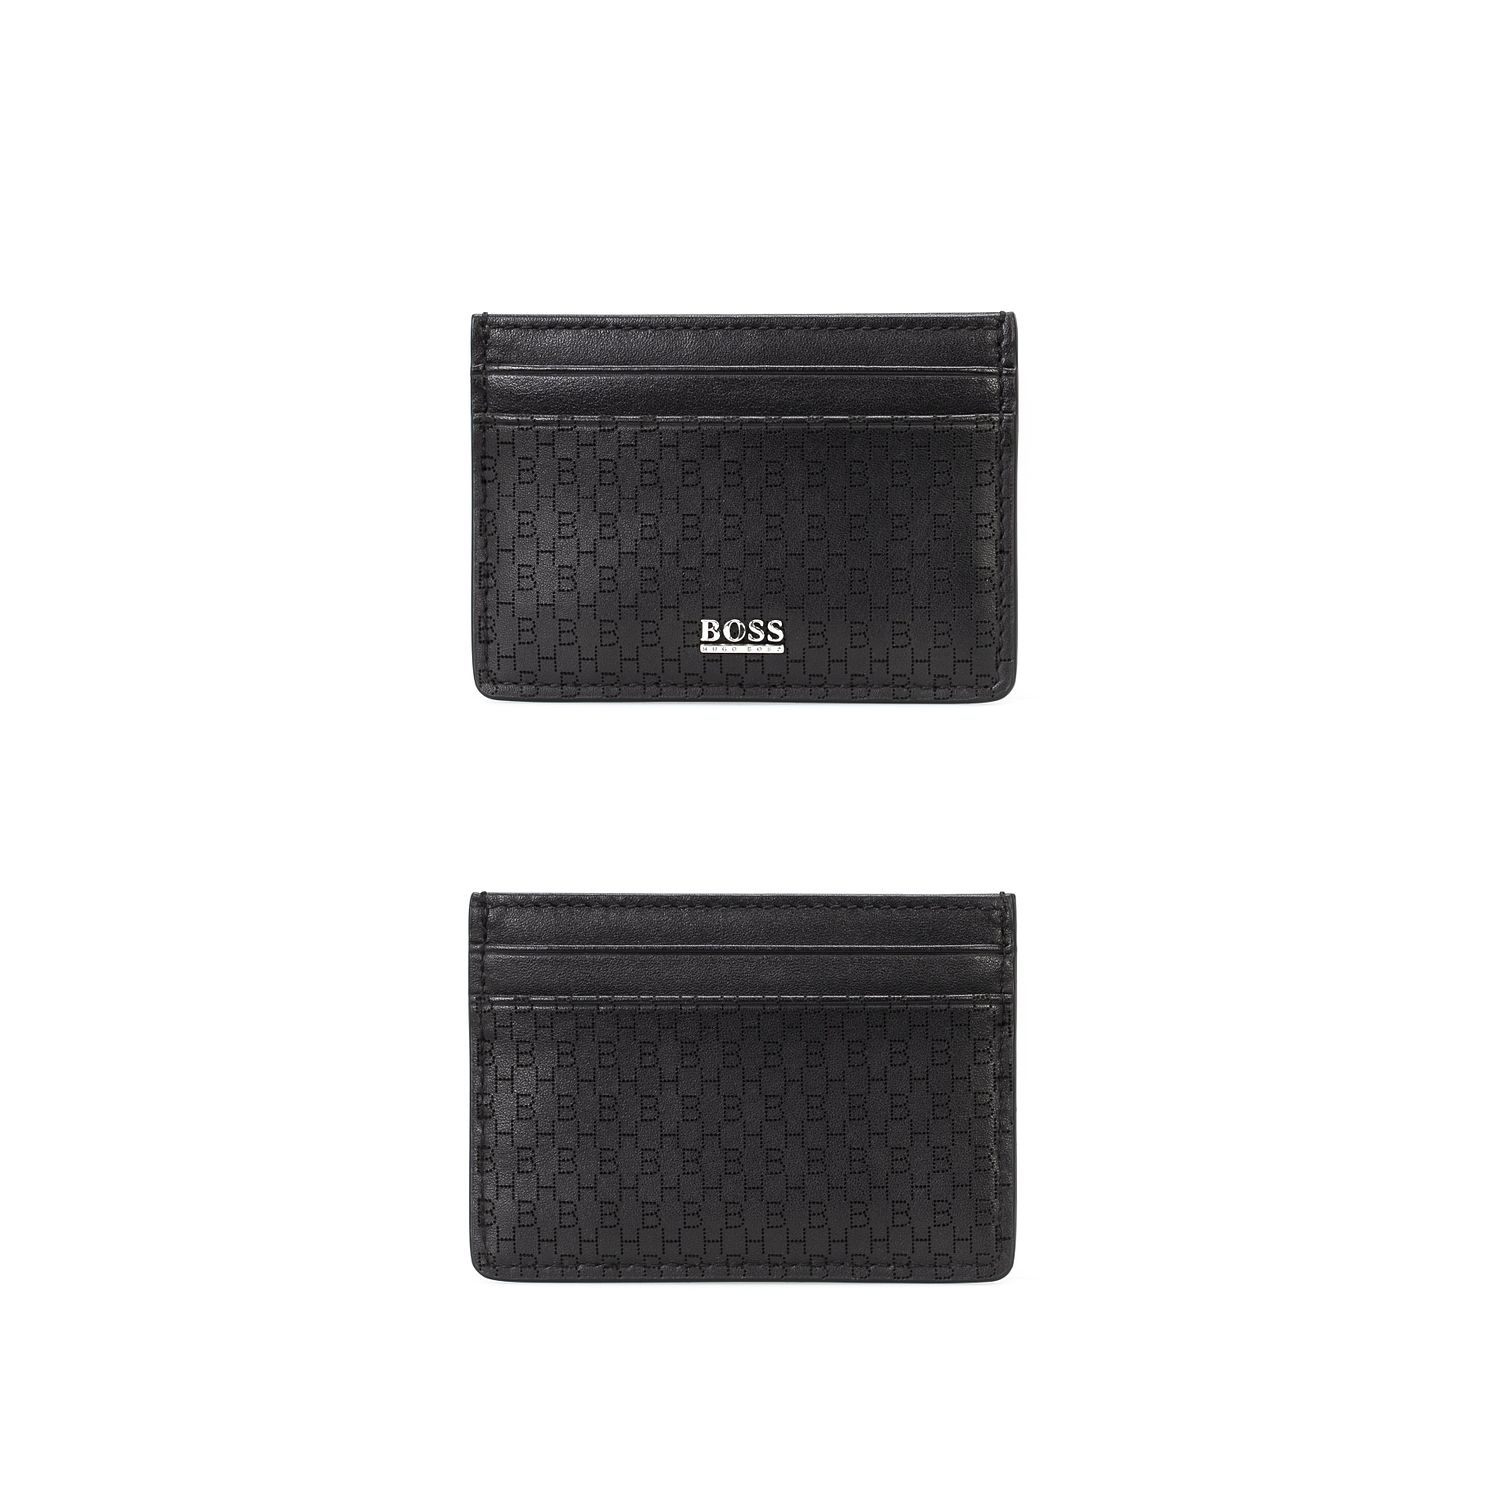 BOSS Crosstown Men's Black Leather Cardholder - Product number 5912210